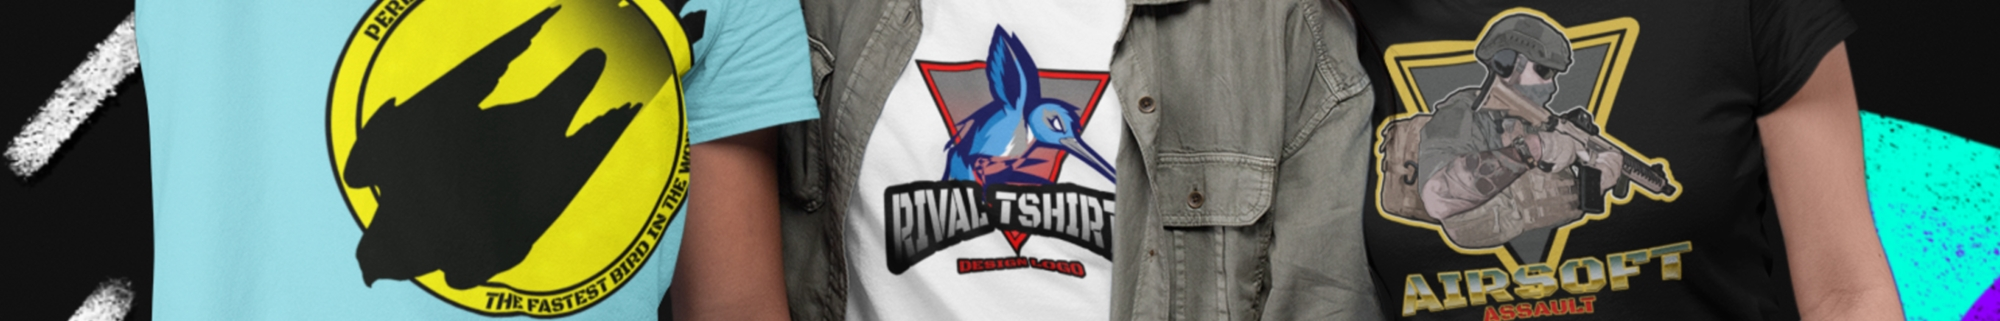 Showroom - Rival Tshirts